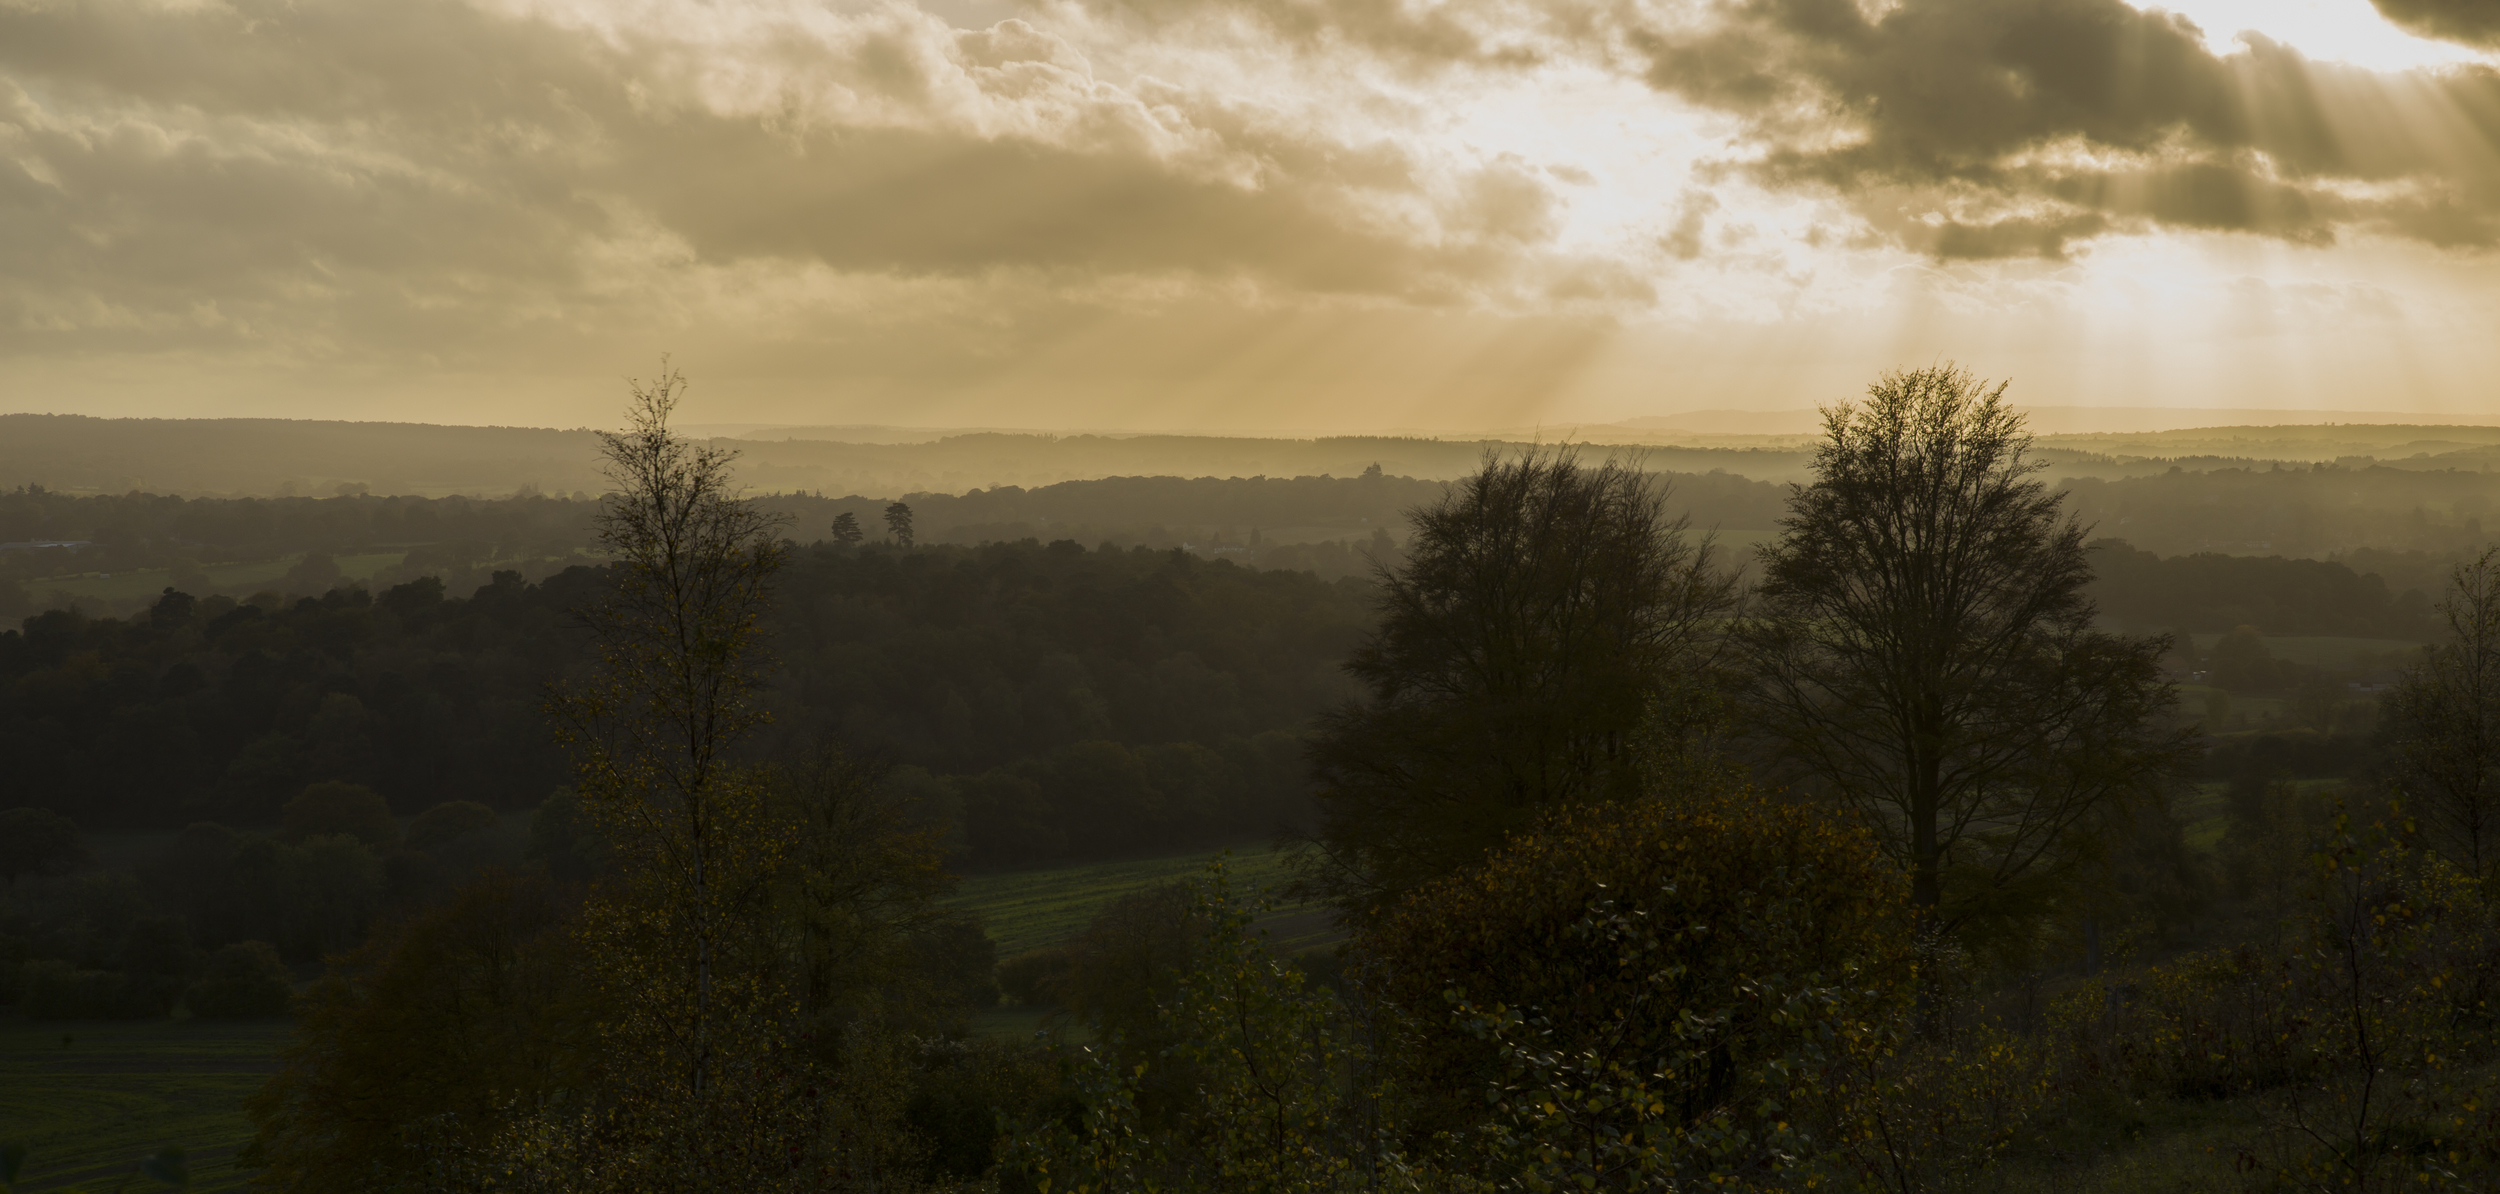 Taken on the North Downs Way, Ranmore, Surrey by Adam Plowden on Canon 5D mkIII and Tamron 24-70.